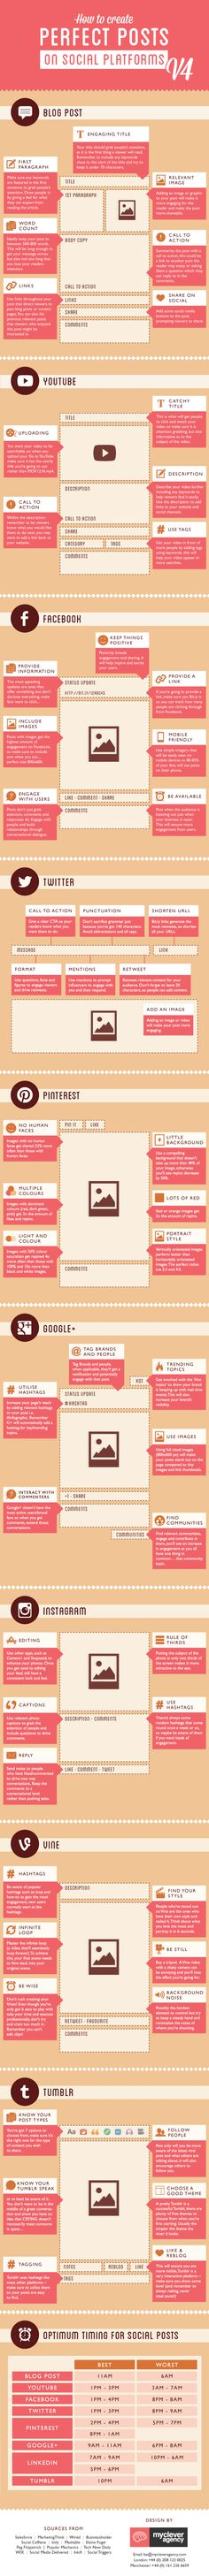 How to Create Perfect Posts on Each Social Media Platform #infographic